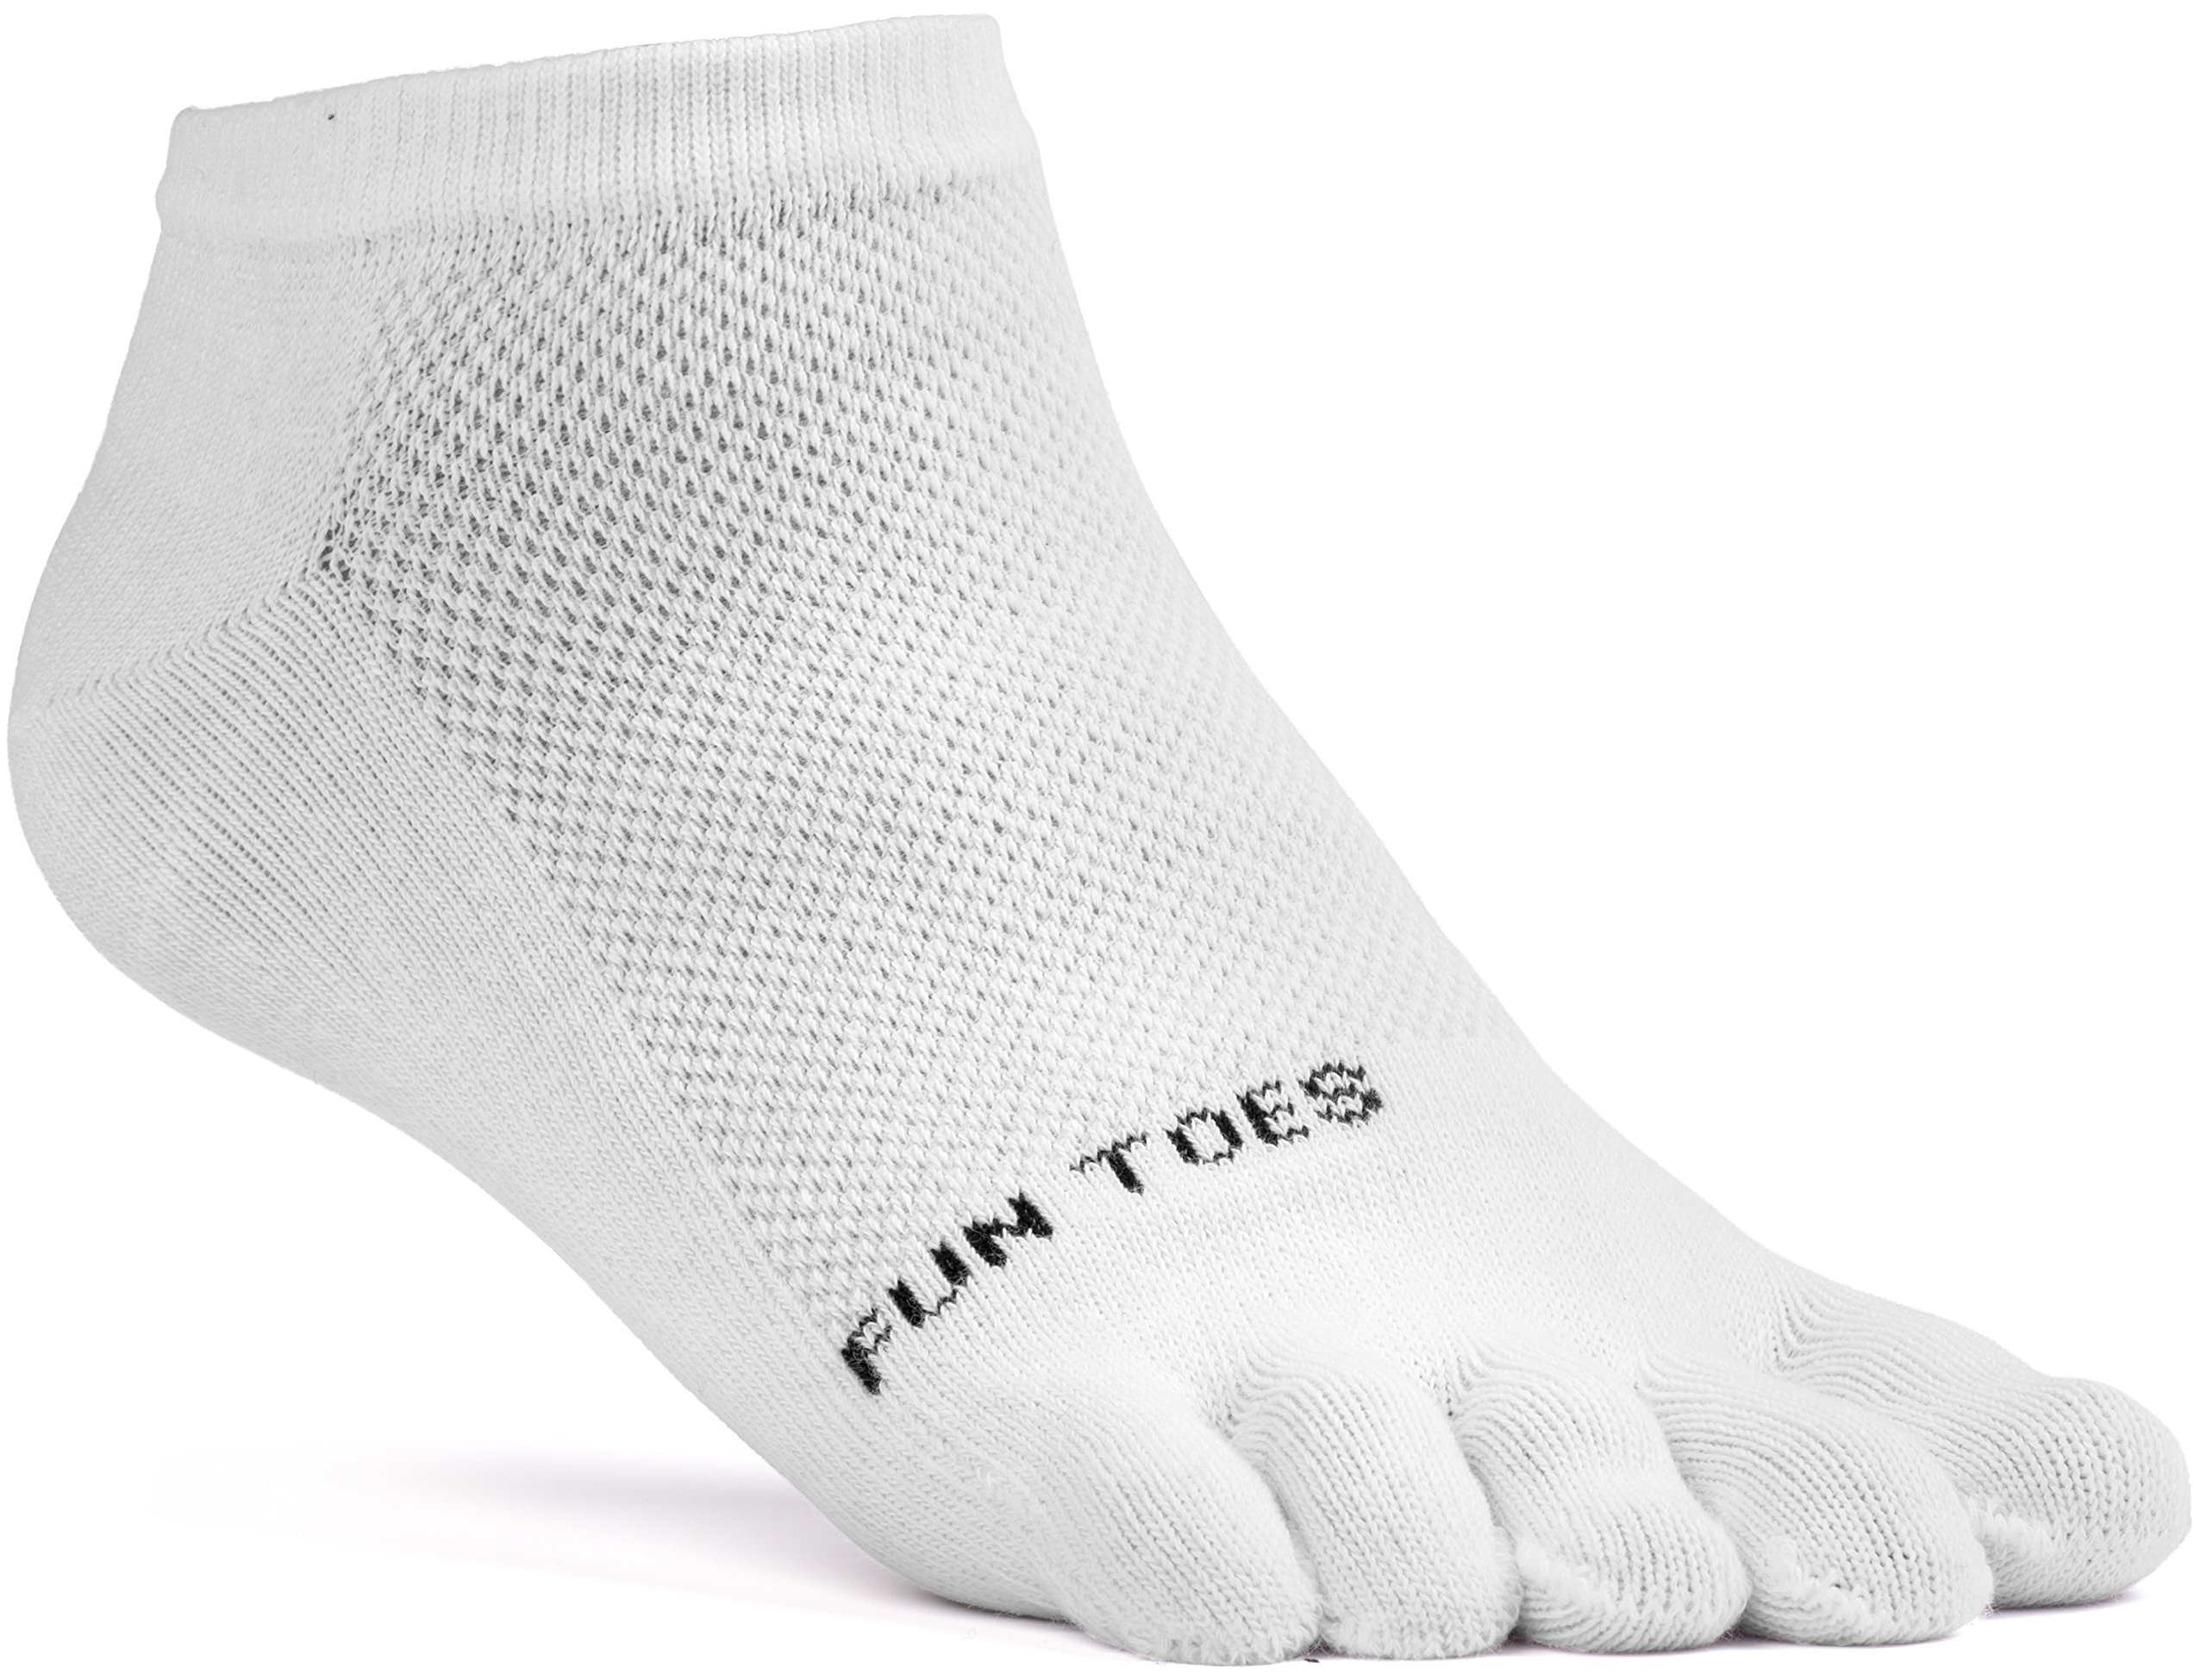 FUN TOES Women's Cotton Toe Socks Barefoot Running Socks -PACK OF 6 PAIRS- Size 9-11 -Lightweight- (White) by FUN TOES (Image #2)